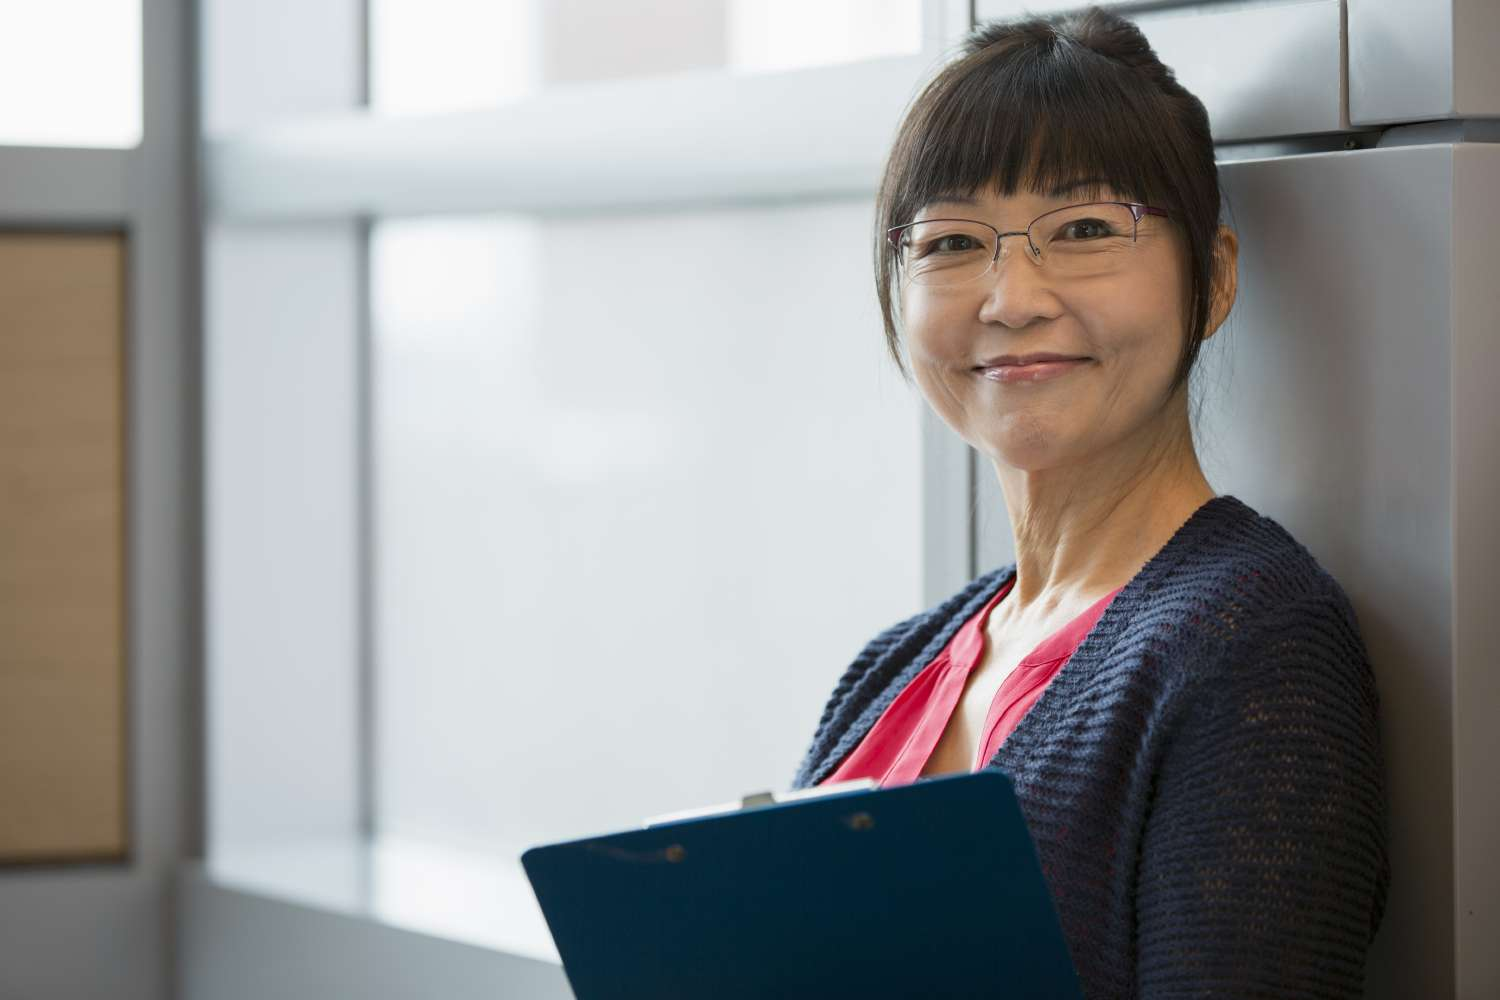 Confident data science professor knows how to make life easier for her students